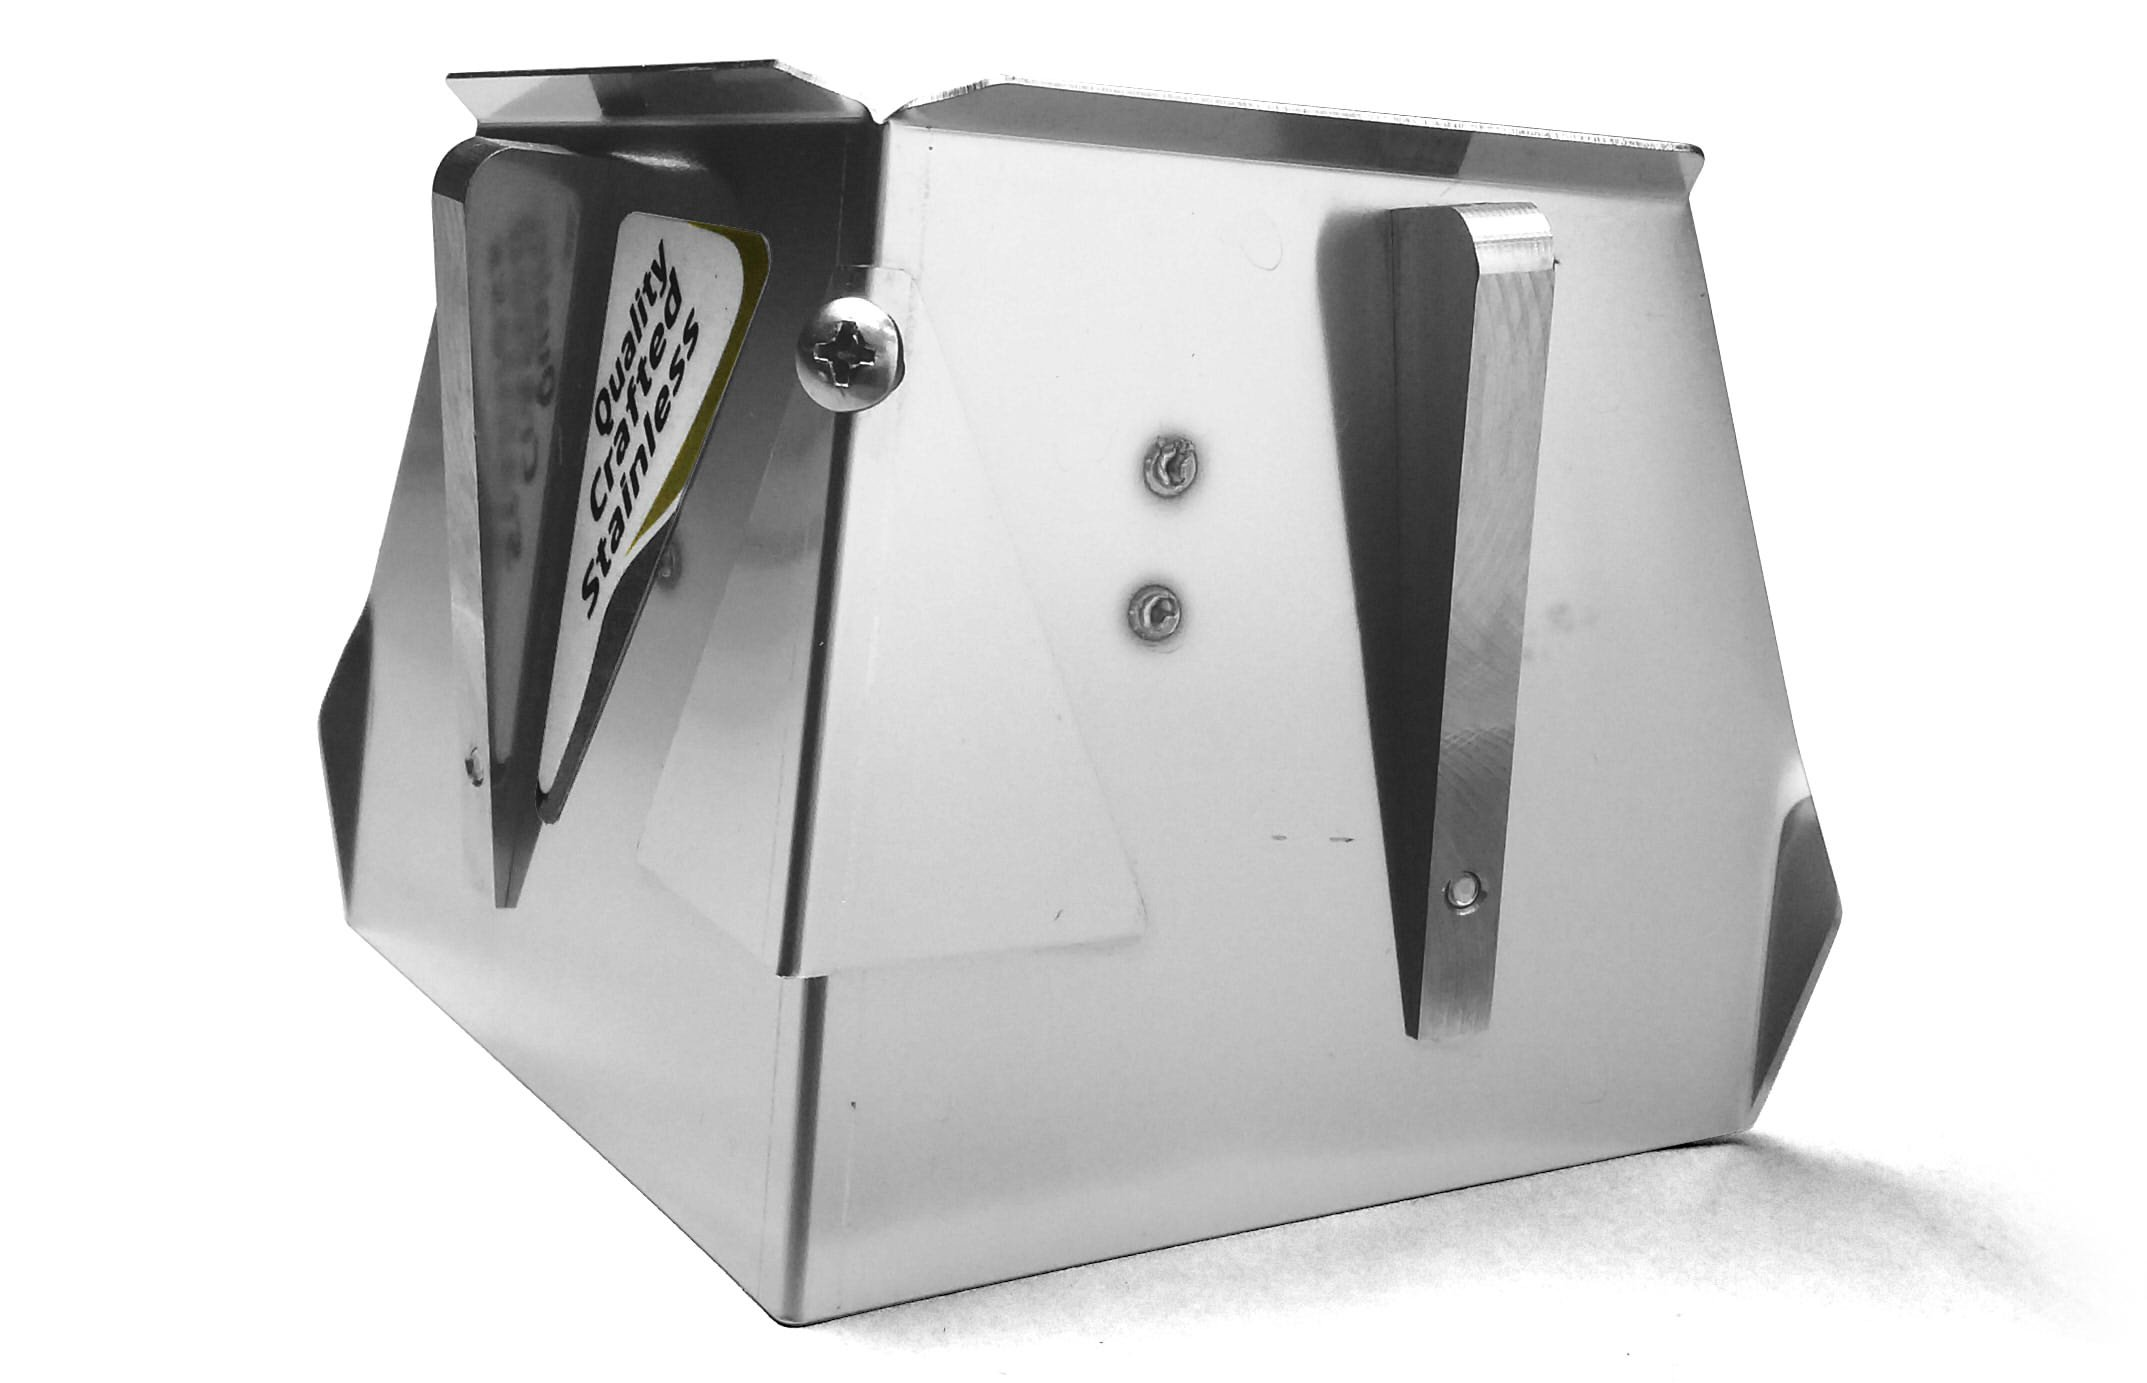 CanAm Tool C400 Direct Corner Flusher 3.5 Inch – Specially Designed For Finishing Corners While Applying Skim Coat